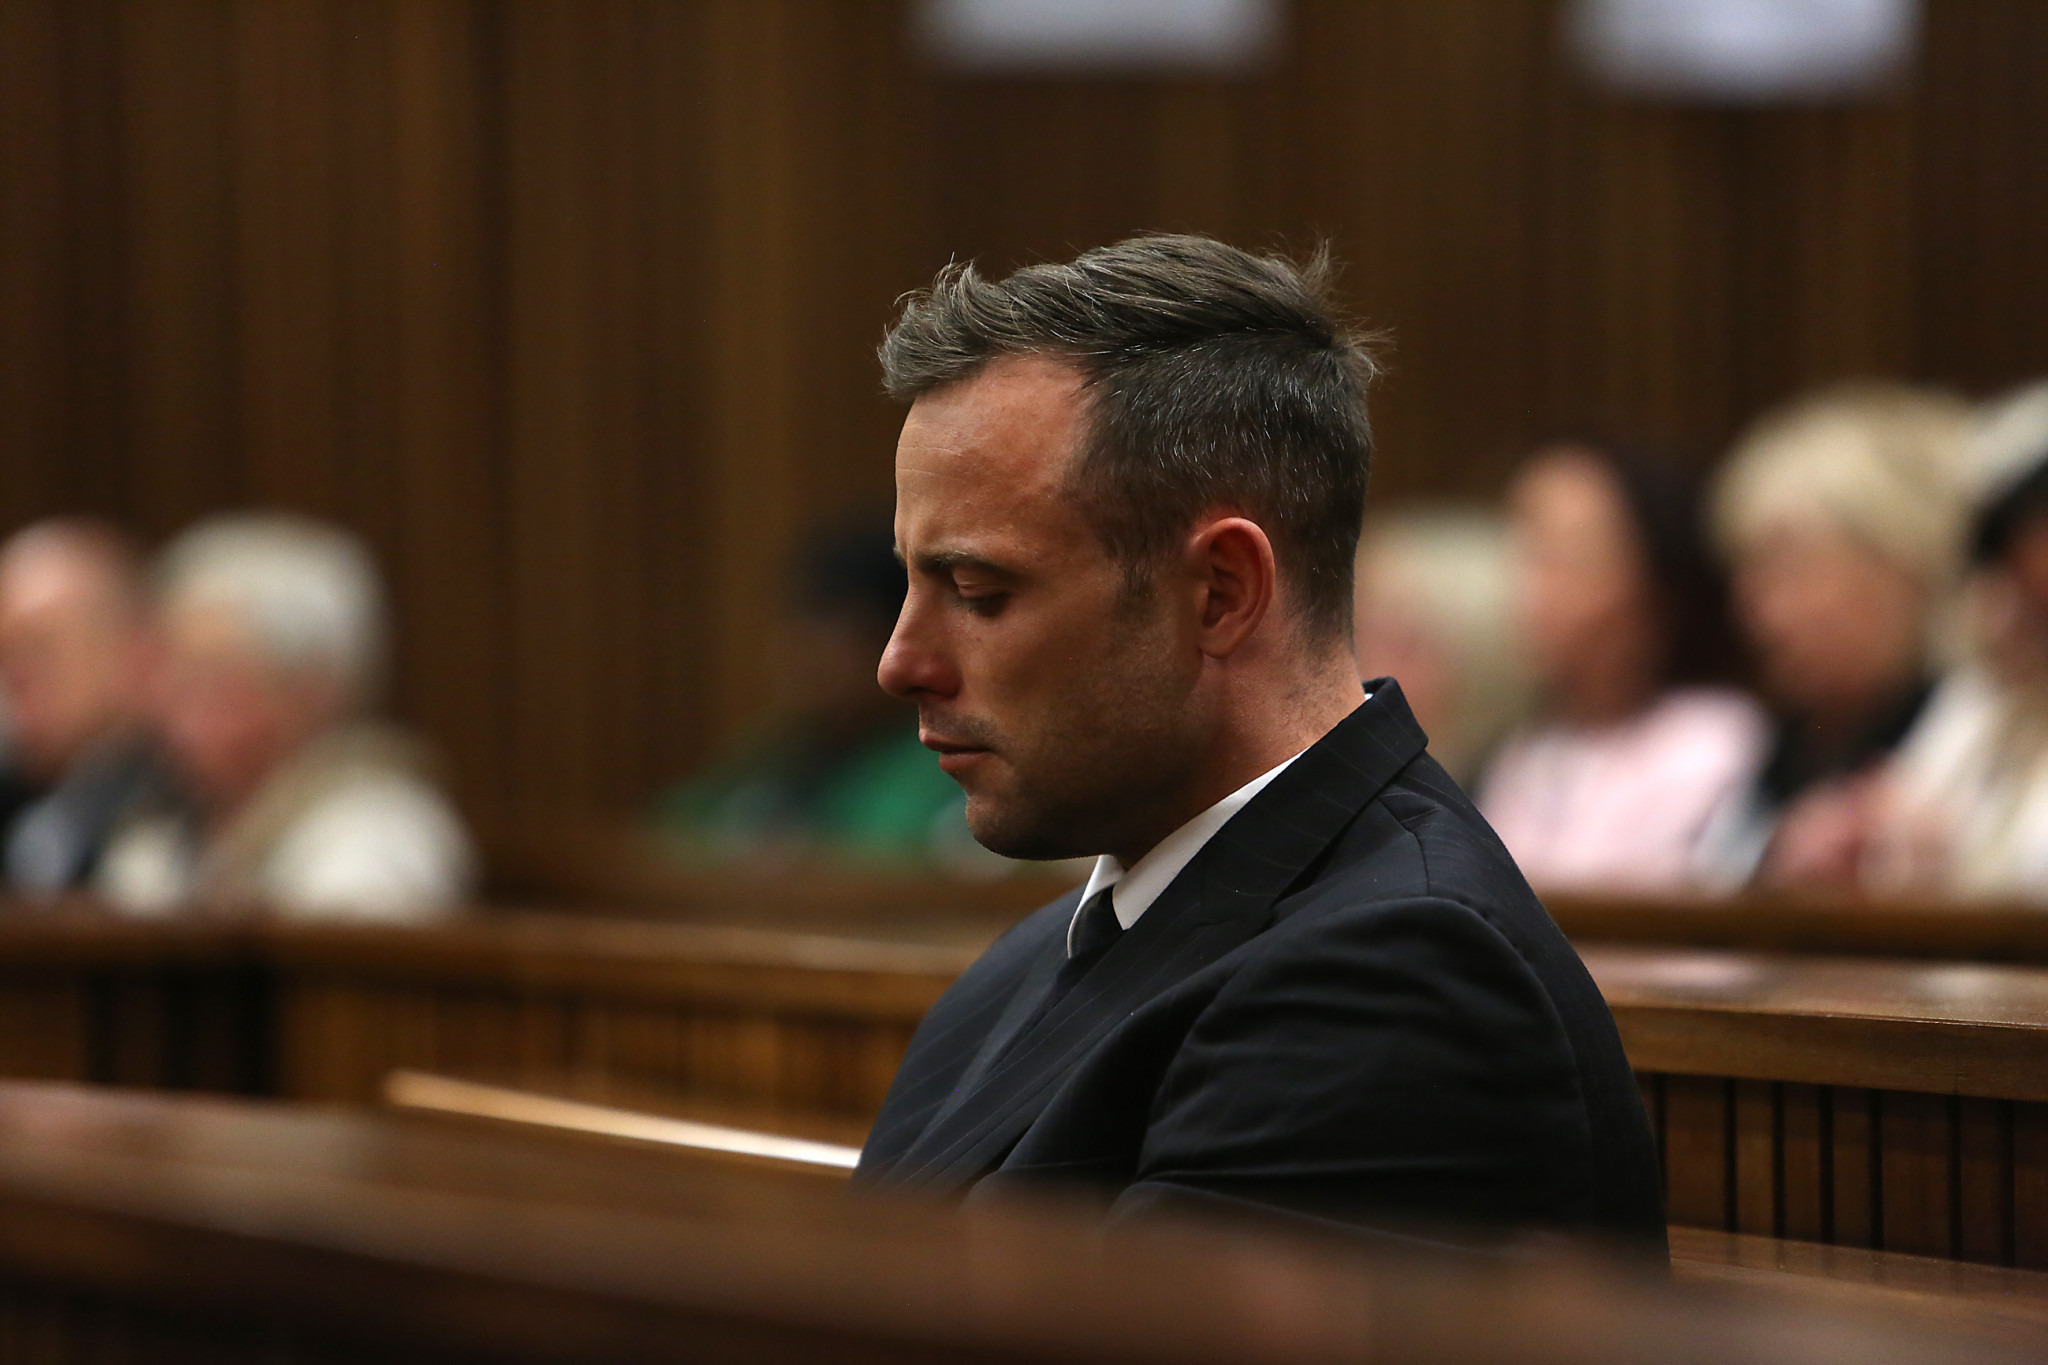 Oscar Pistorius' prison sentence for the murder of Reeva Steenkamp was increased to 13 years and five months in 2017 ©Getty Images